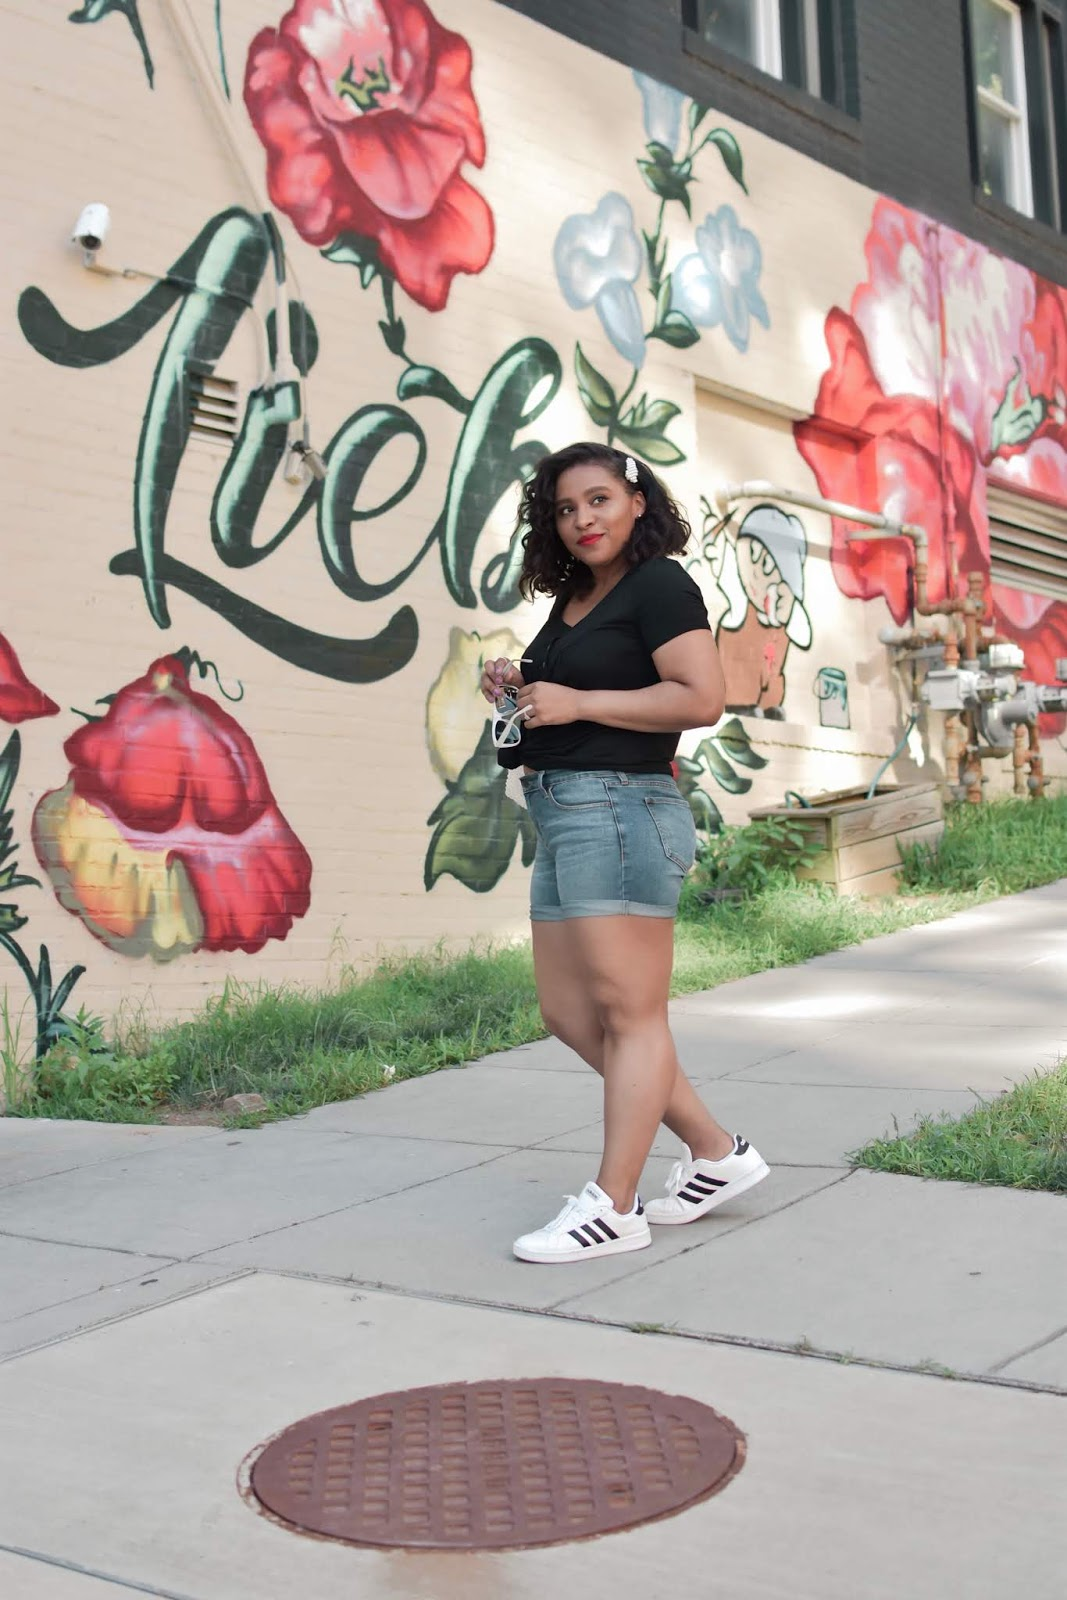 Lookbook store, denim shorts, cutoff, street art, mural, dc murals, summer outfit ideas